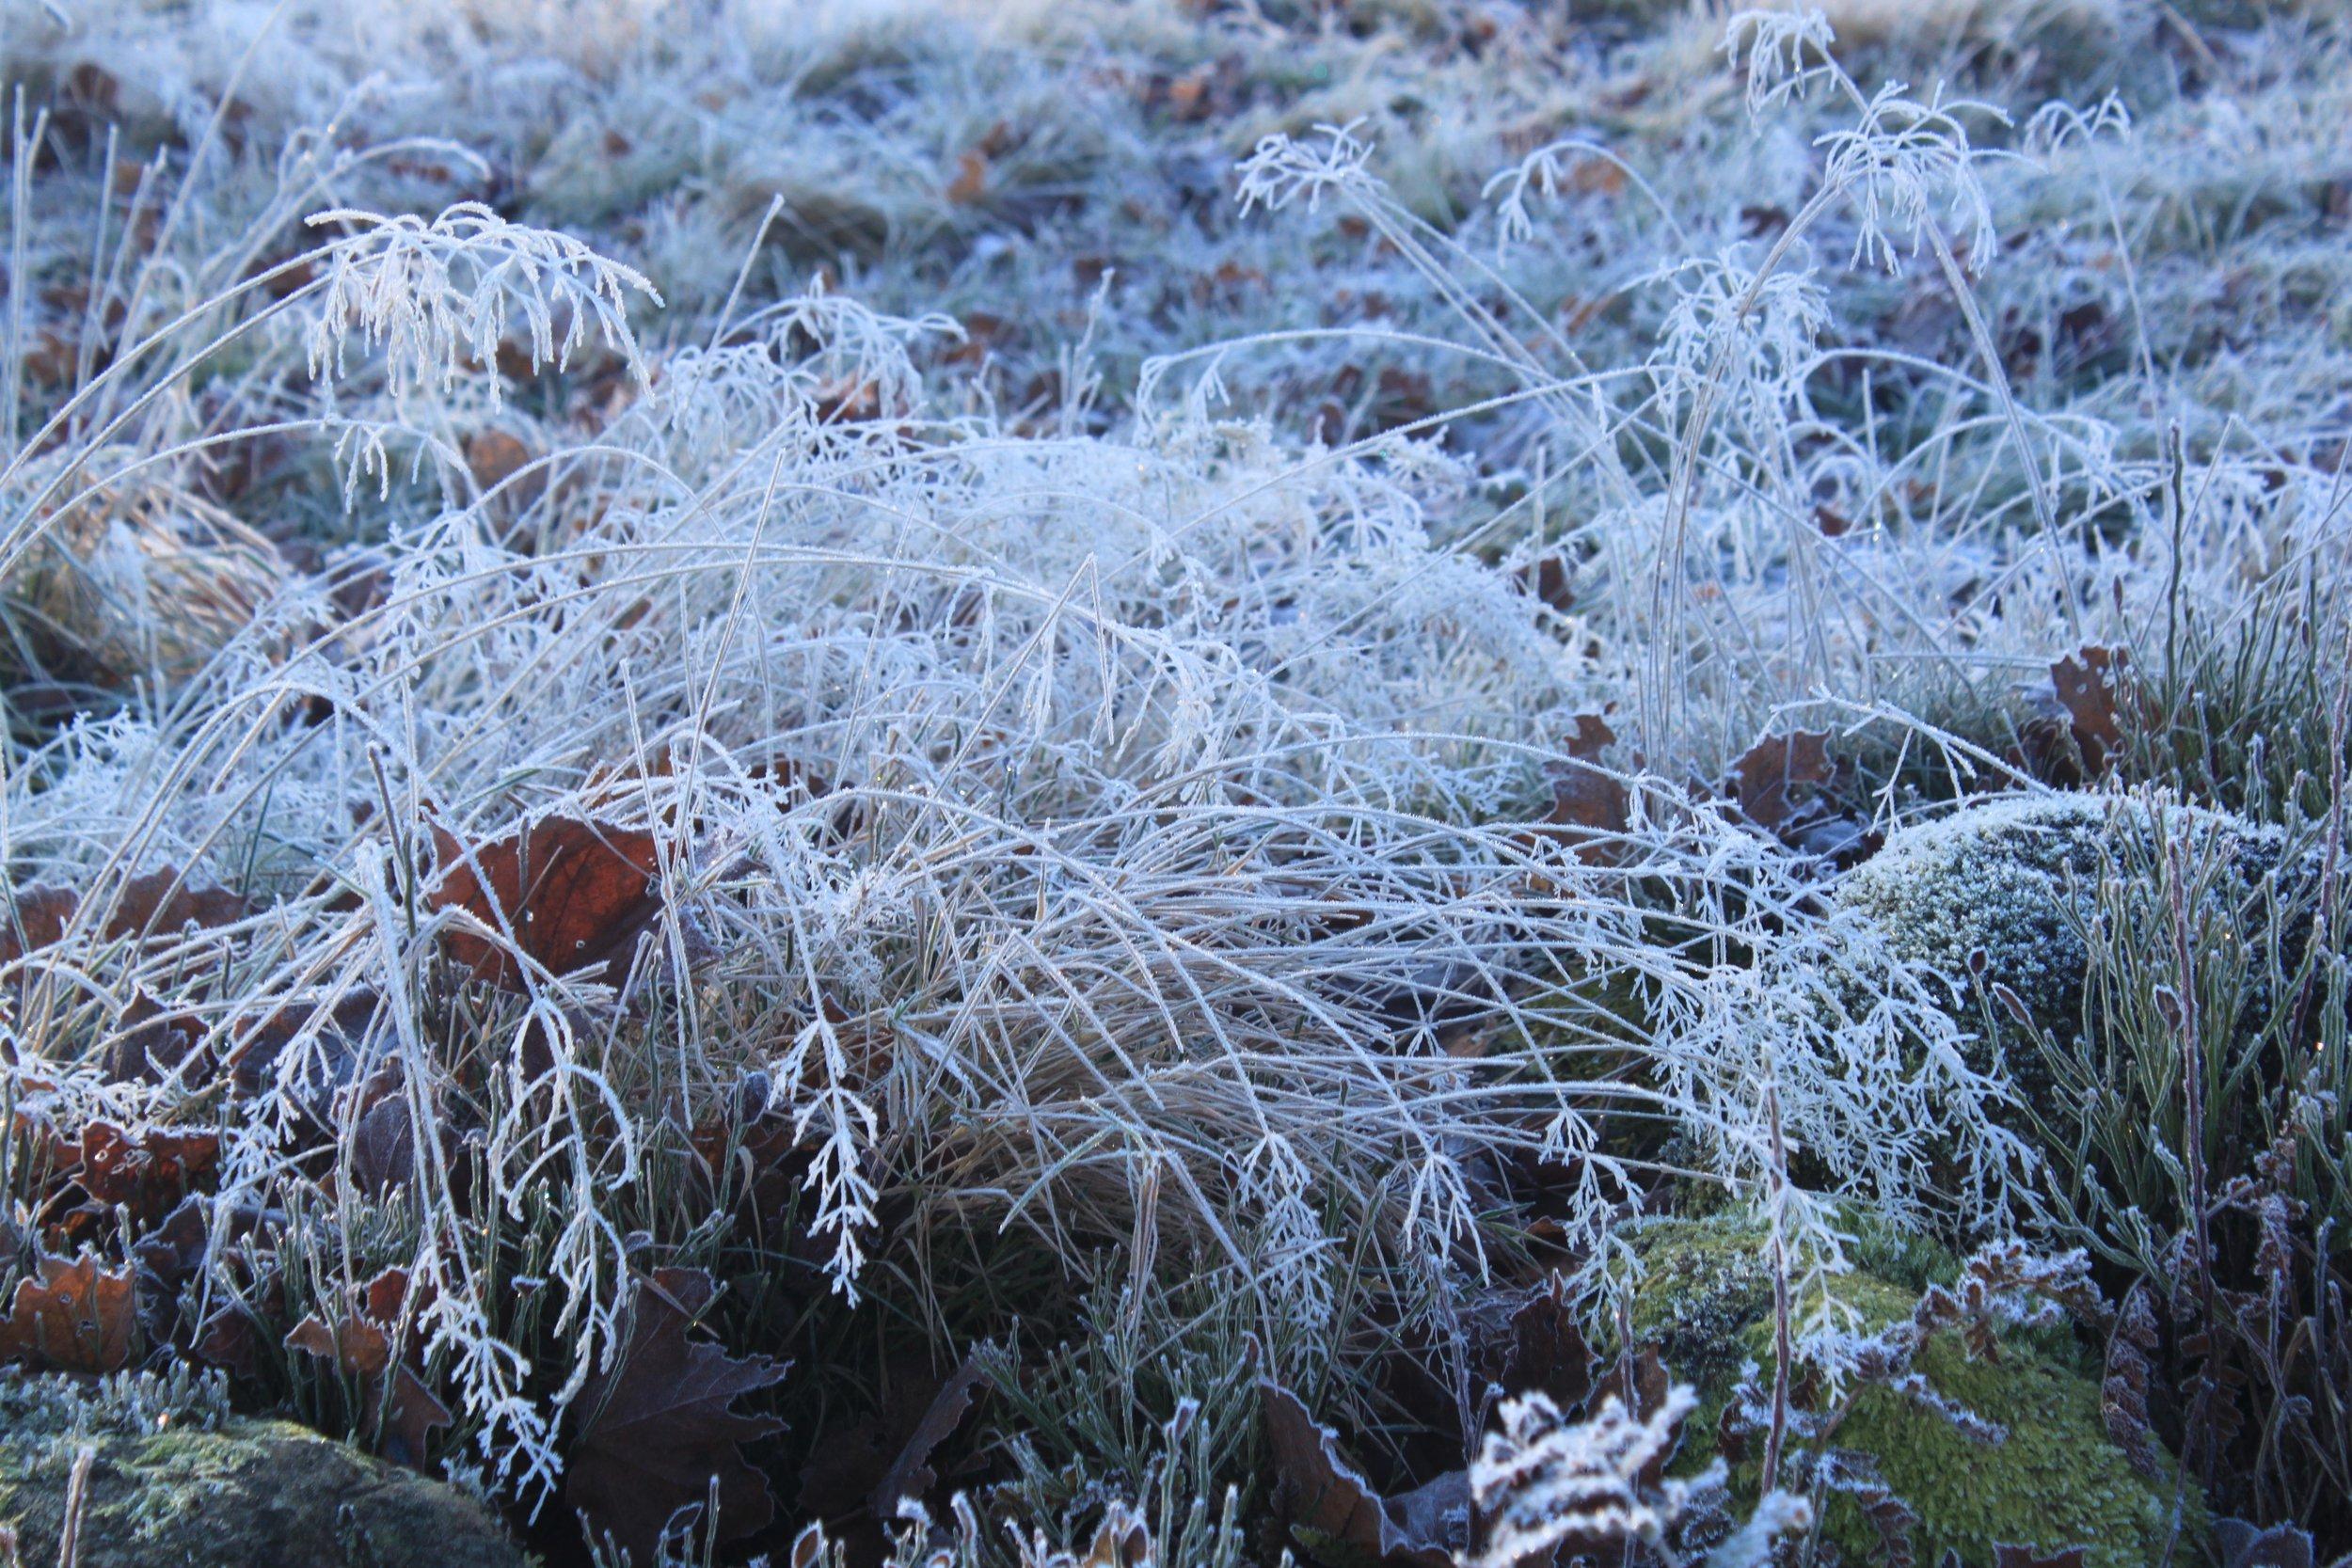 I'm not sure what this grass is, but the frost turned it a true white. It was all over the fields, which made them look like they were covered in some sort of wispy cotton.